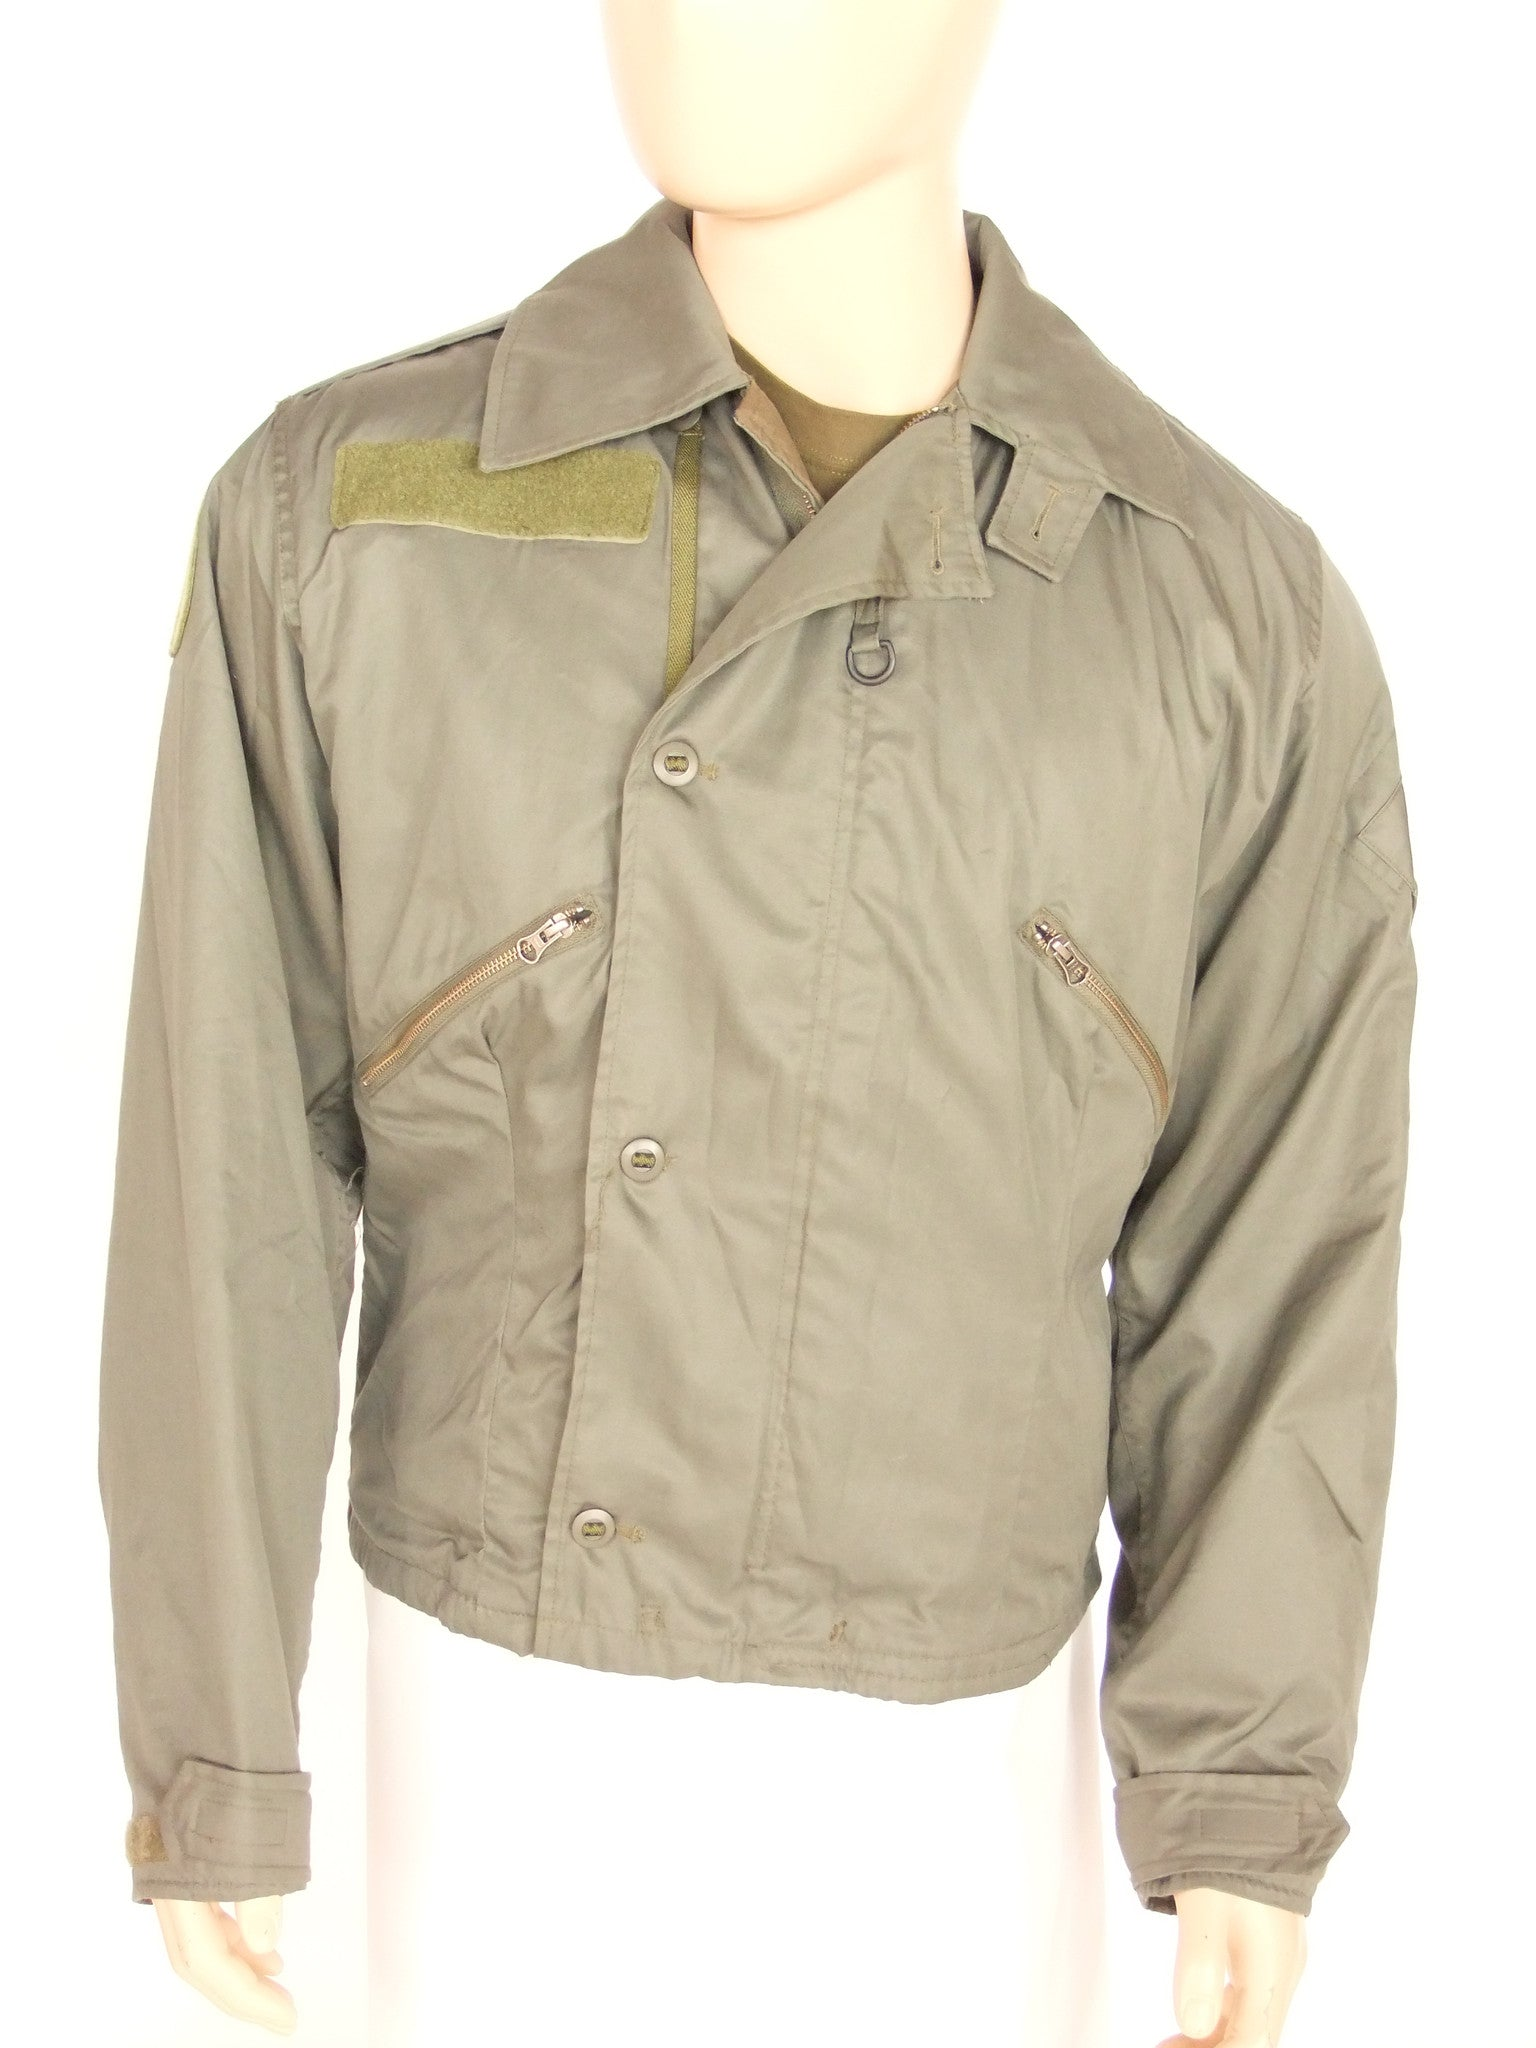 RAF air crew cold weather jacket